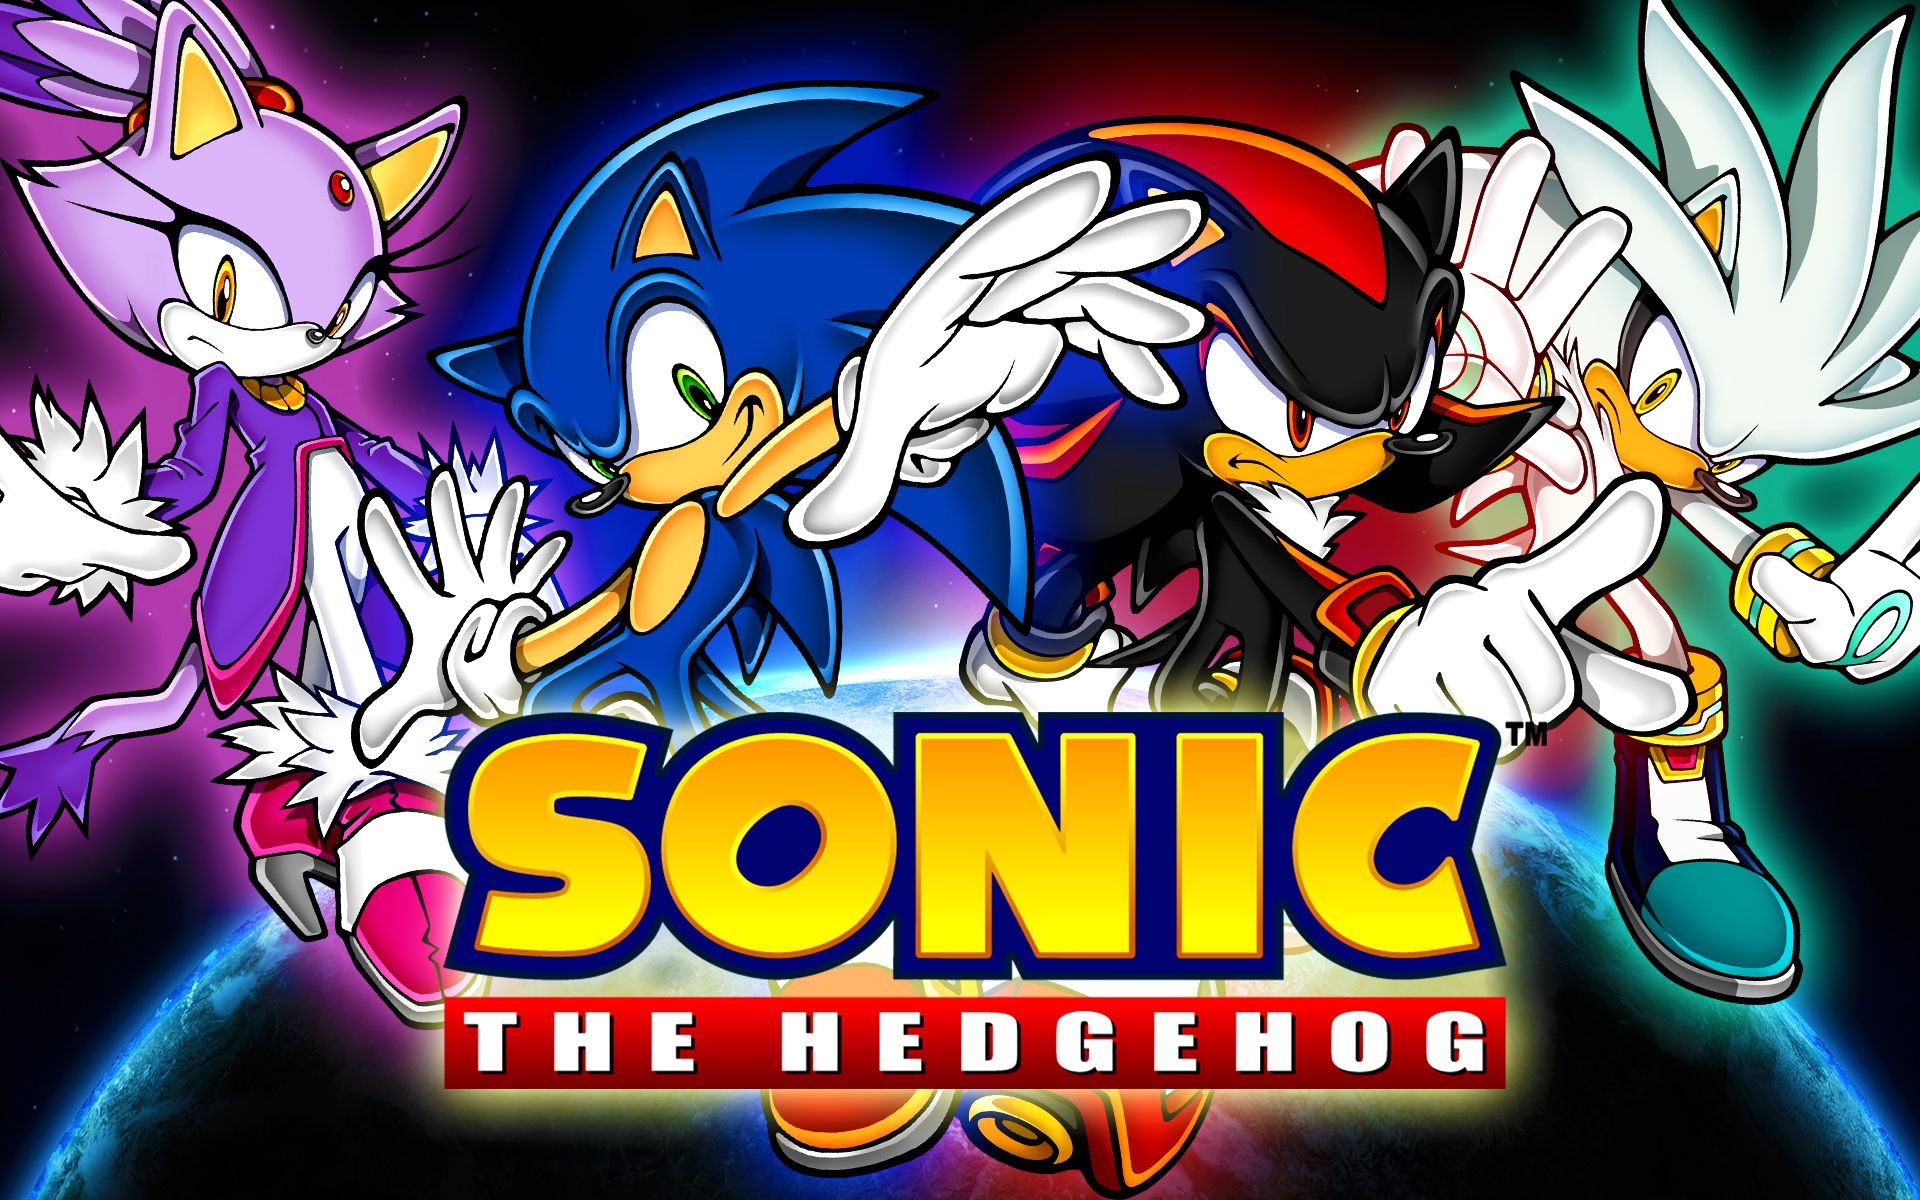 Blaze, Sonic, Shadow, And Silver. The Four Most Powerful